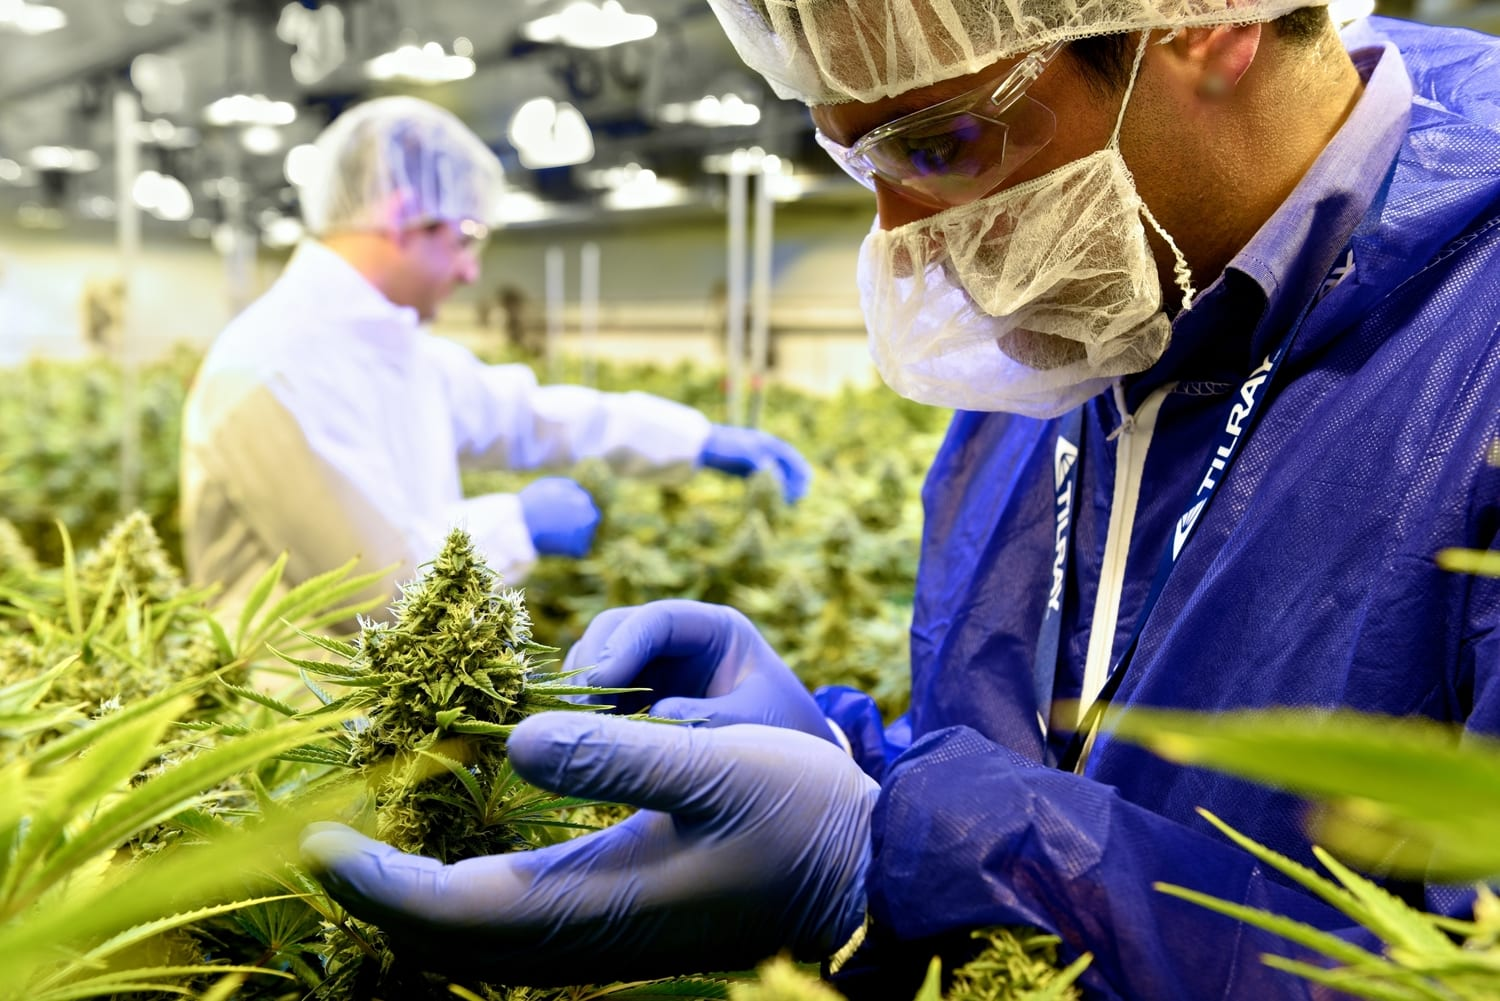 Tilray reduces required shareholder vote count to 1/3 for Aphria merger